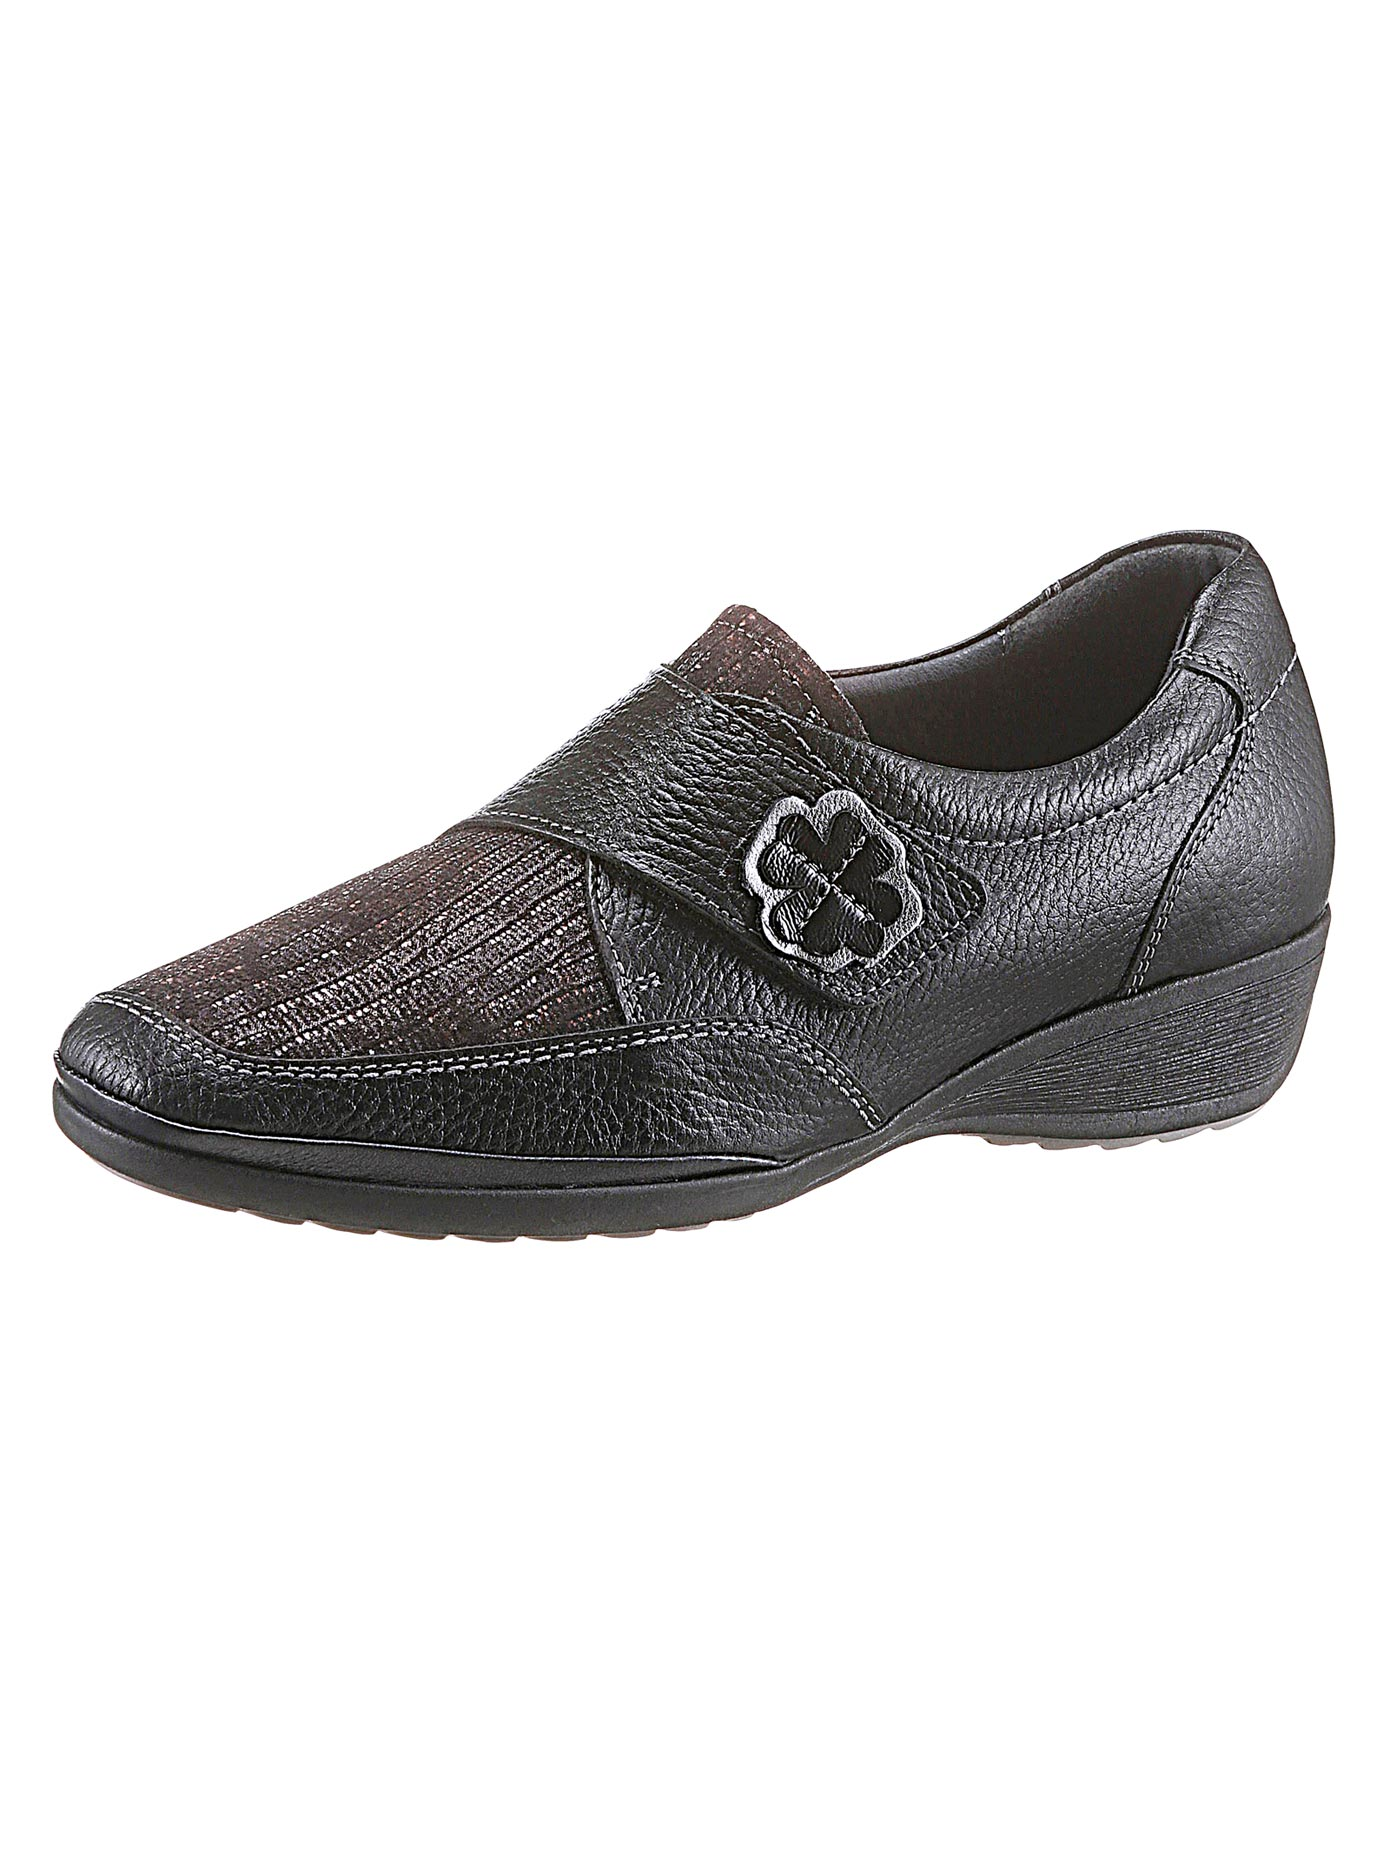 Image of Airsoft Klettschuh